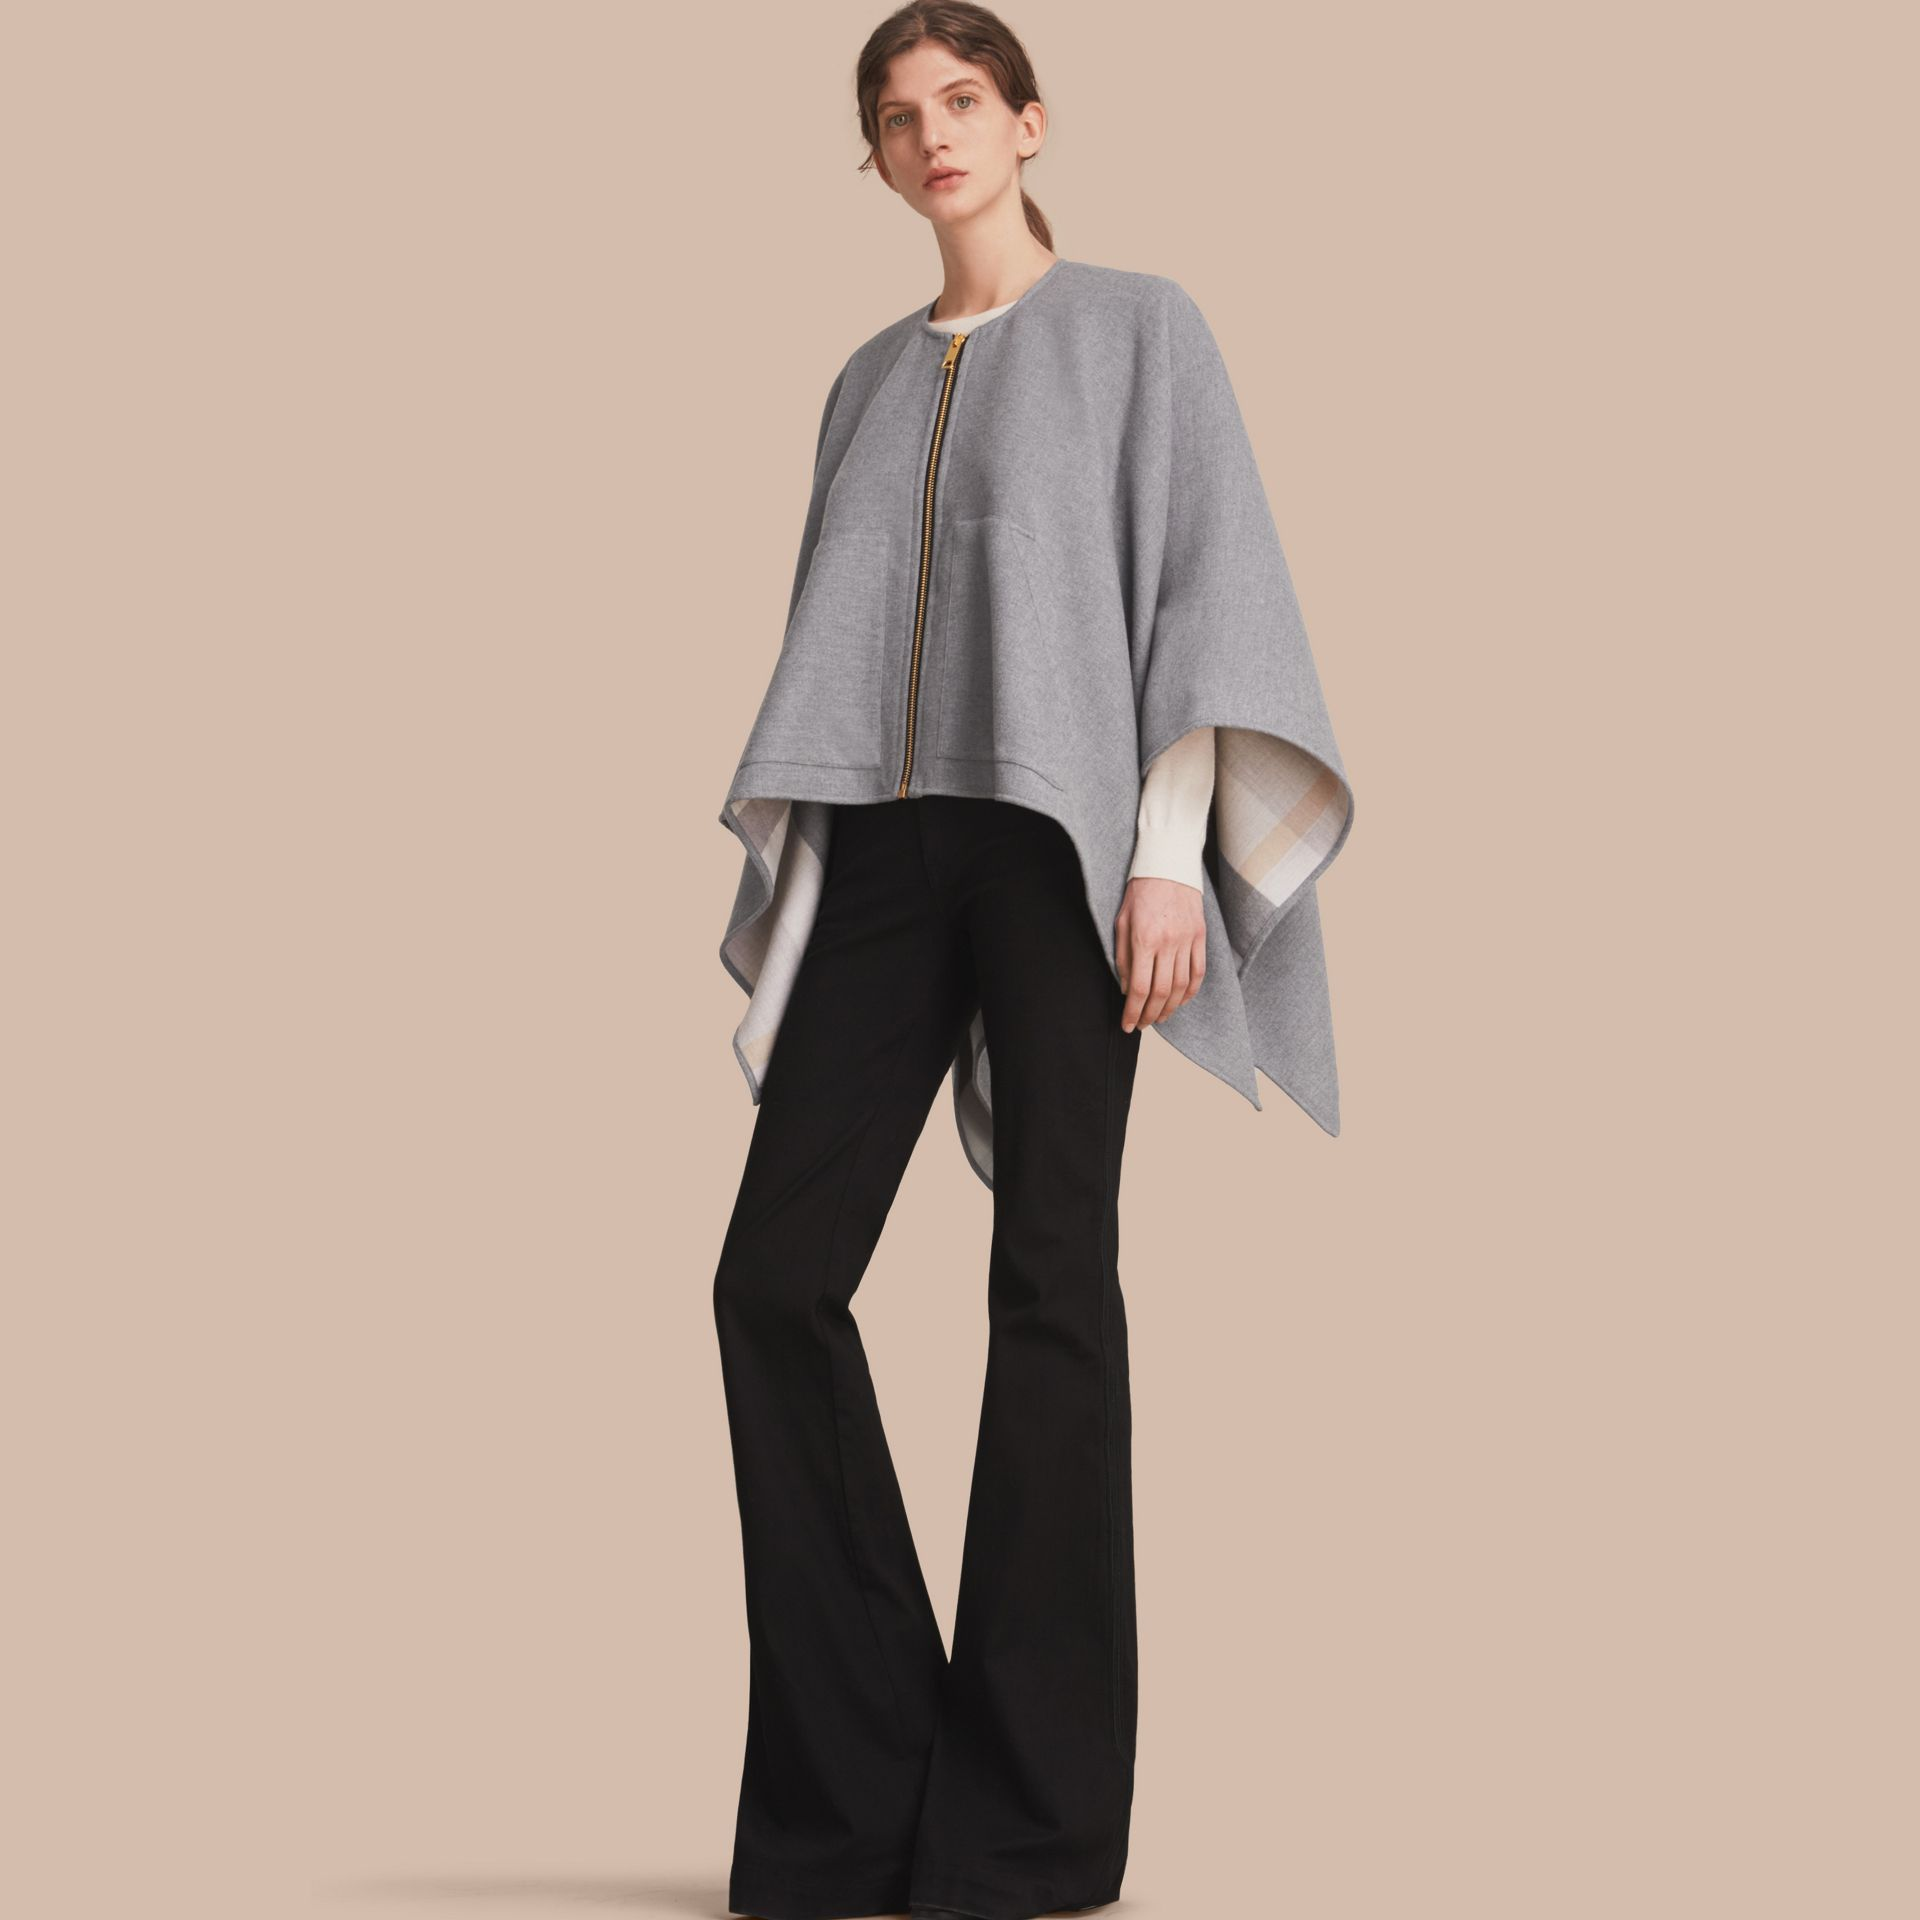 Merino Wool Poncho in Light Grey - Women | Burberry - gallery image 1